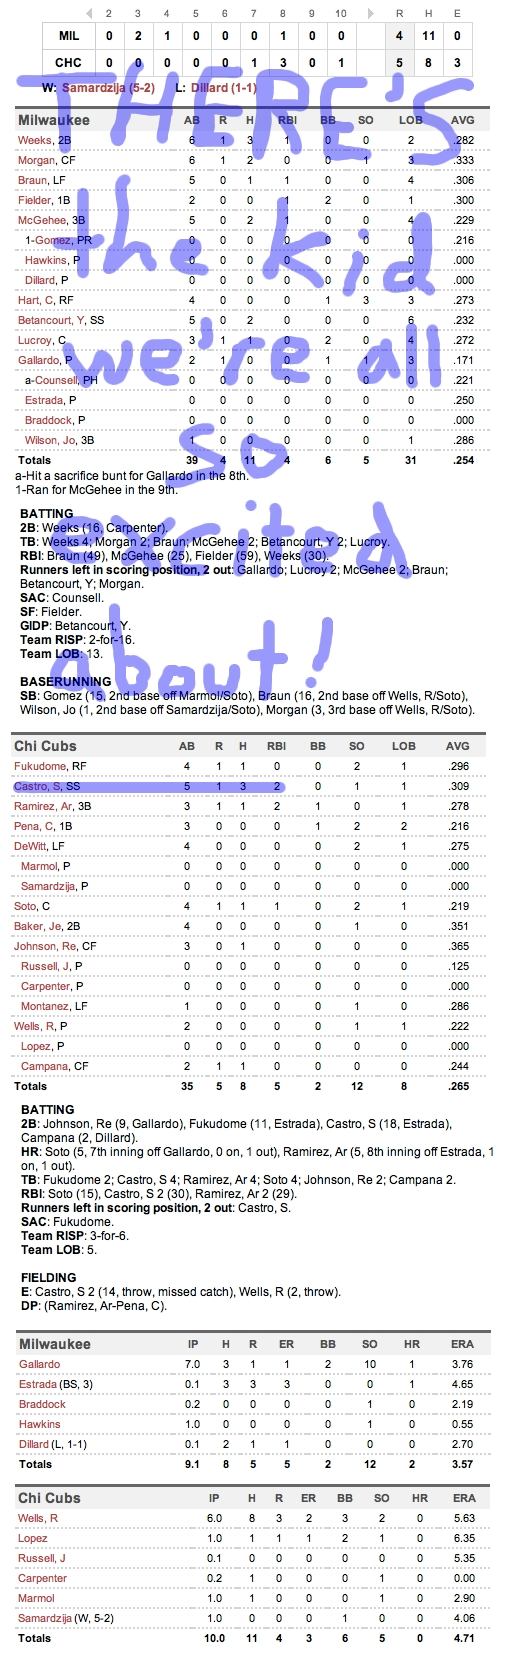 Enhanced Box Score: Brewers 4, Cubs 5 – June 14, 2011